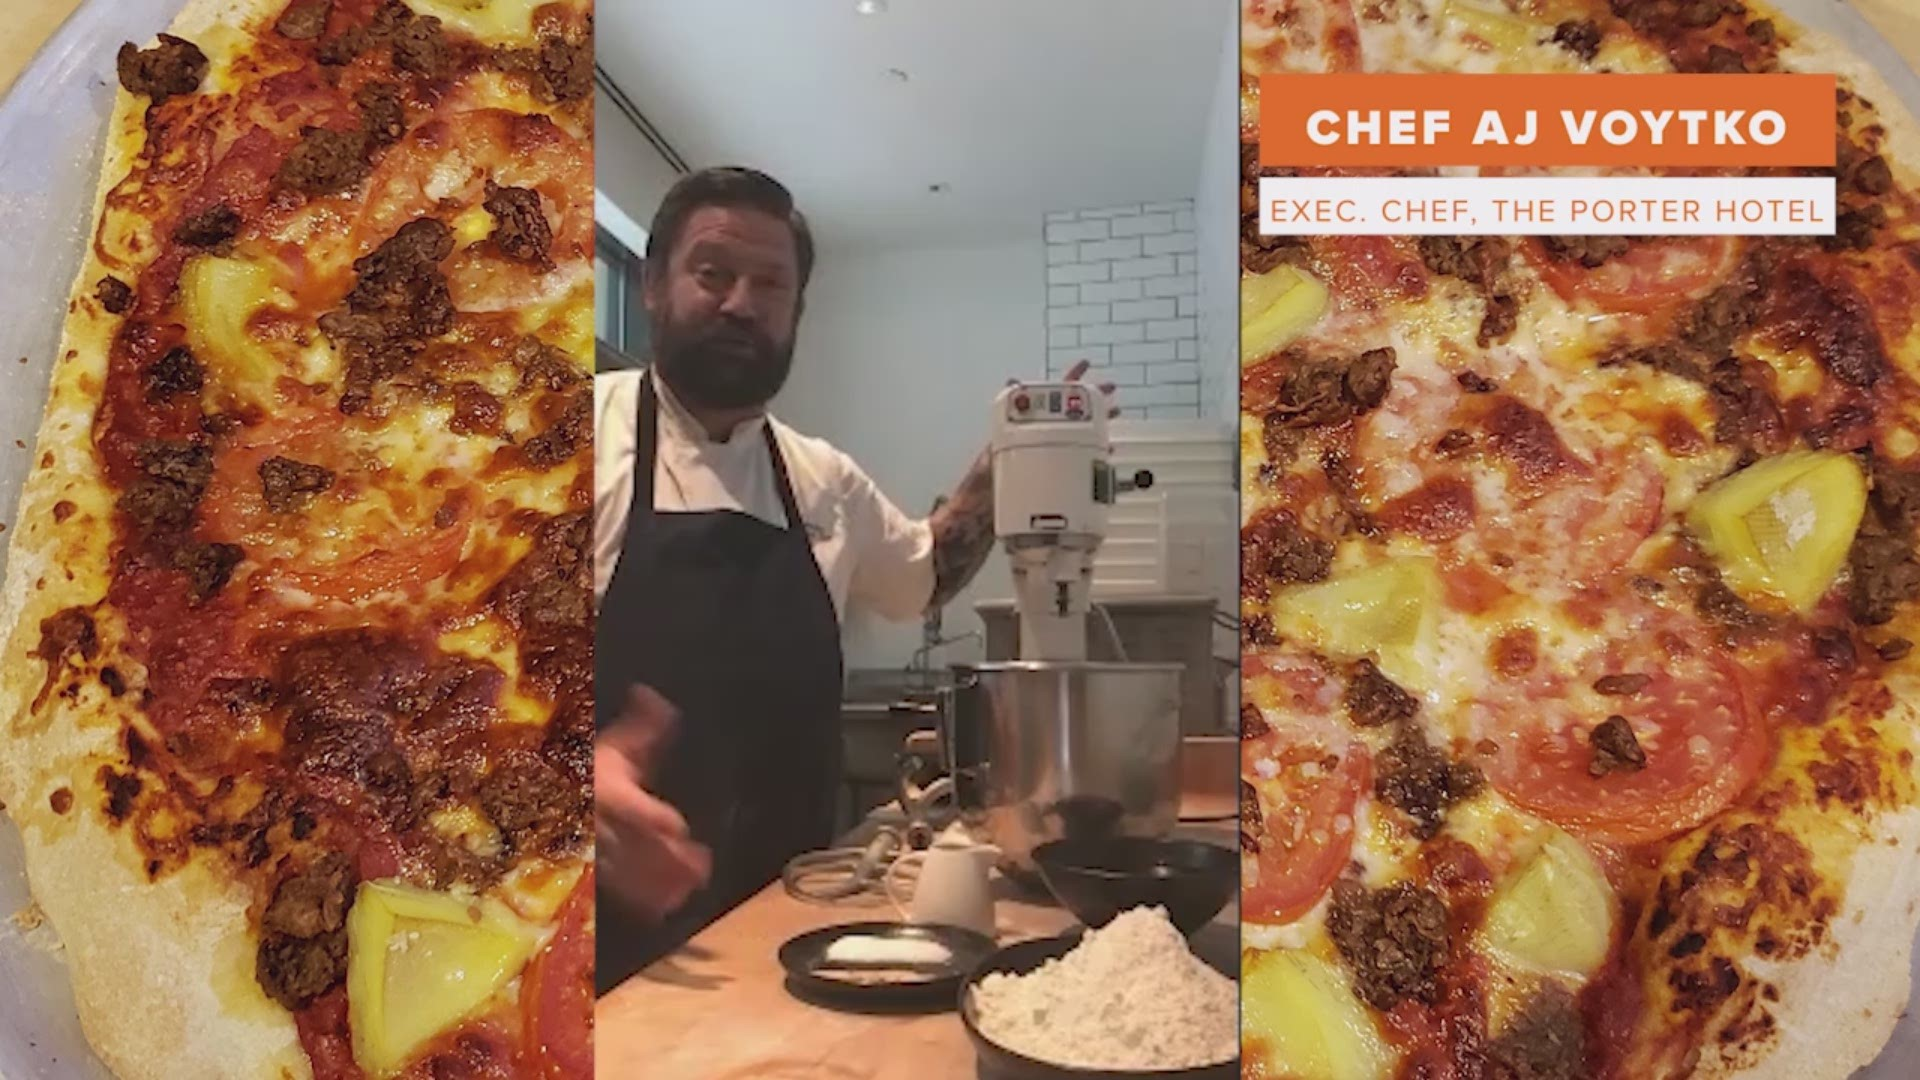 How to make pizza dough at home during the pandemic kgwcom 1920x1080